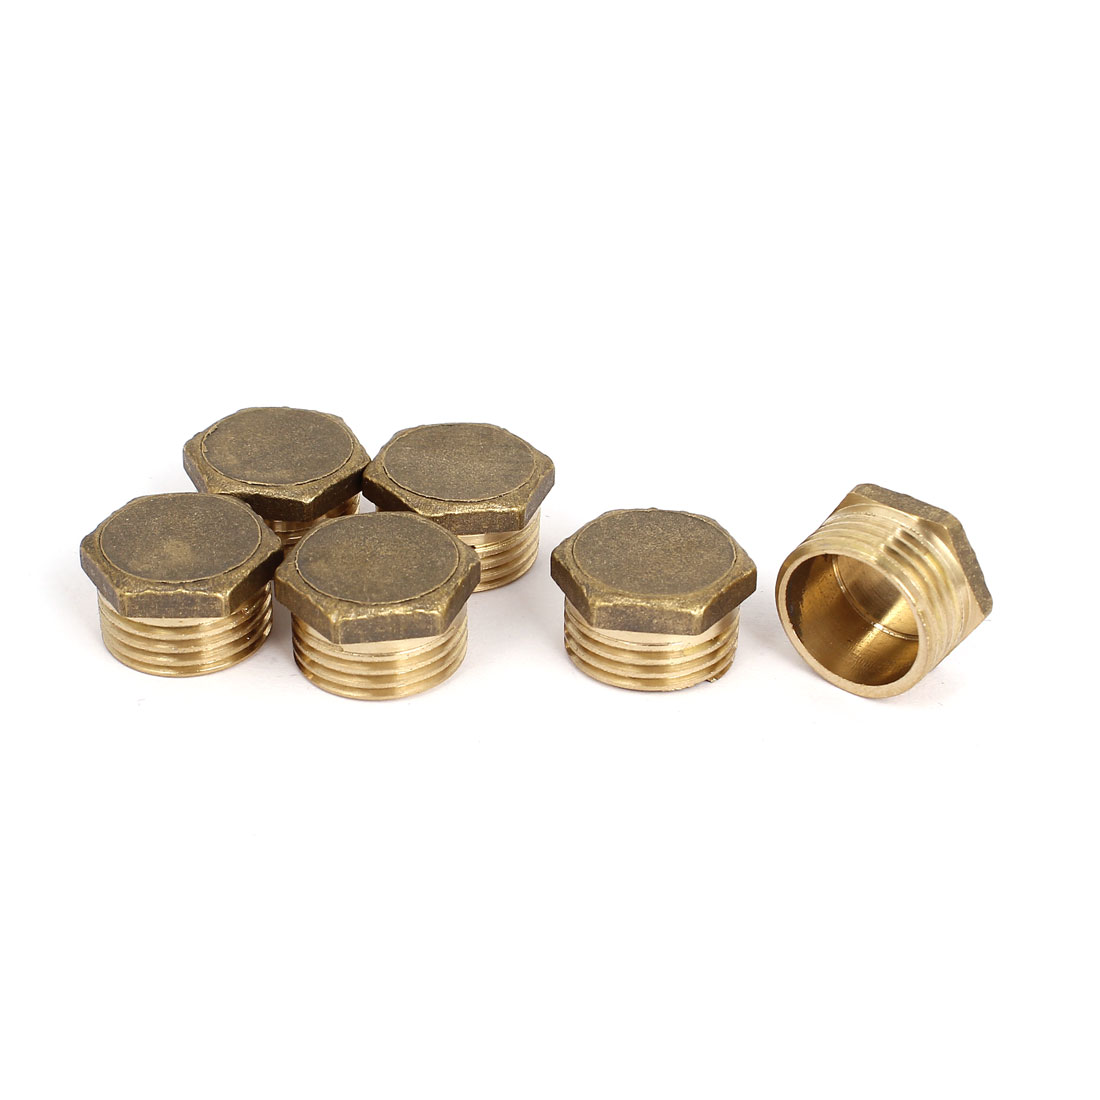 1/2BSP 20mm Thread Fuel Water Air Brass Pipe Hex Head Fitting 6 Pcs